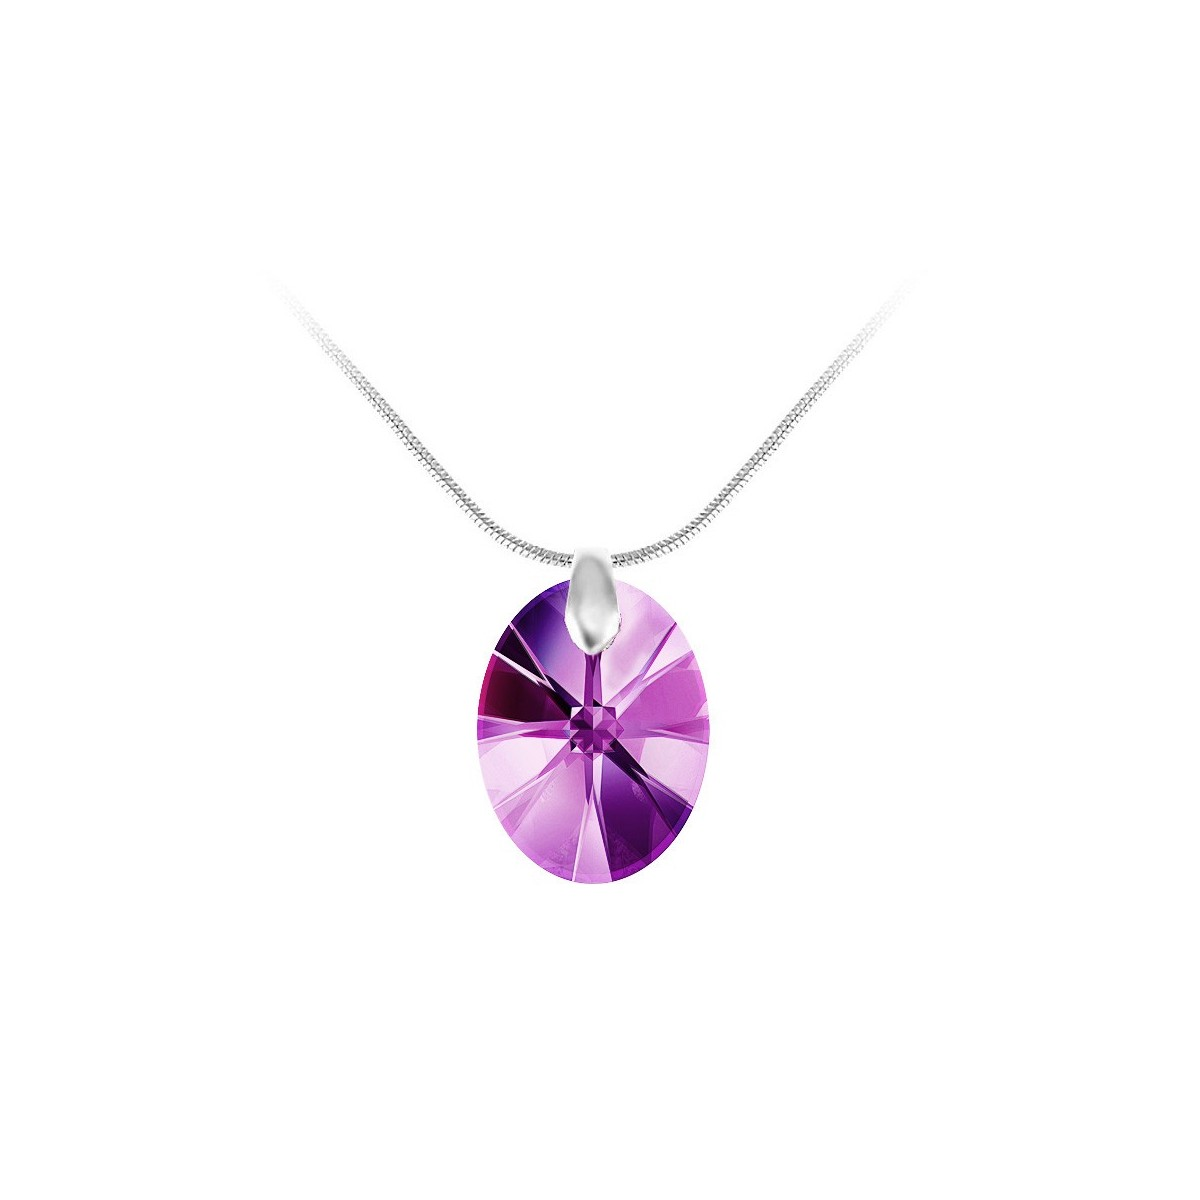 Collier argenté et goutte violette So Charm made with Crystal from Swarovski